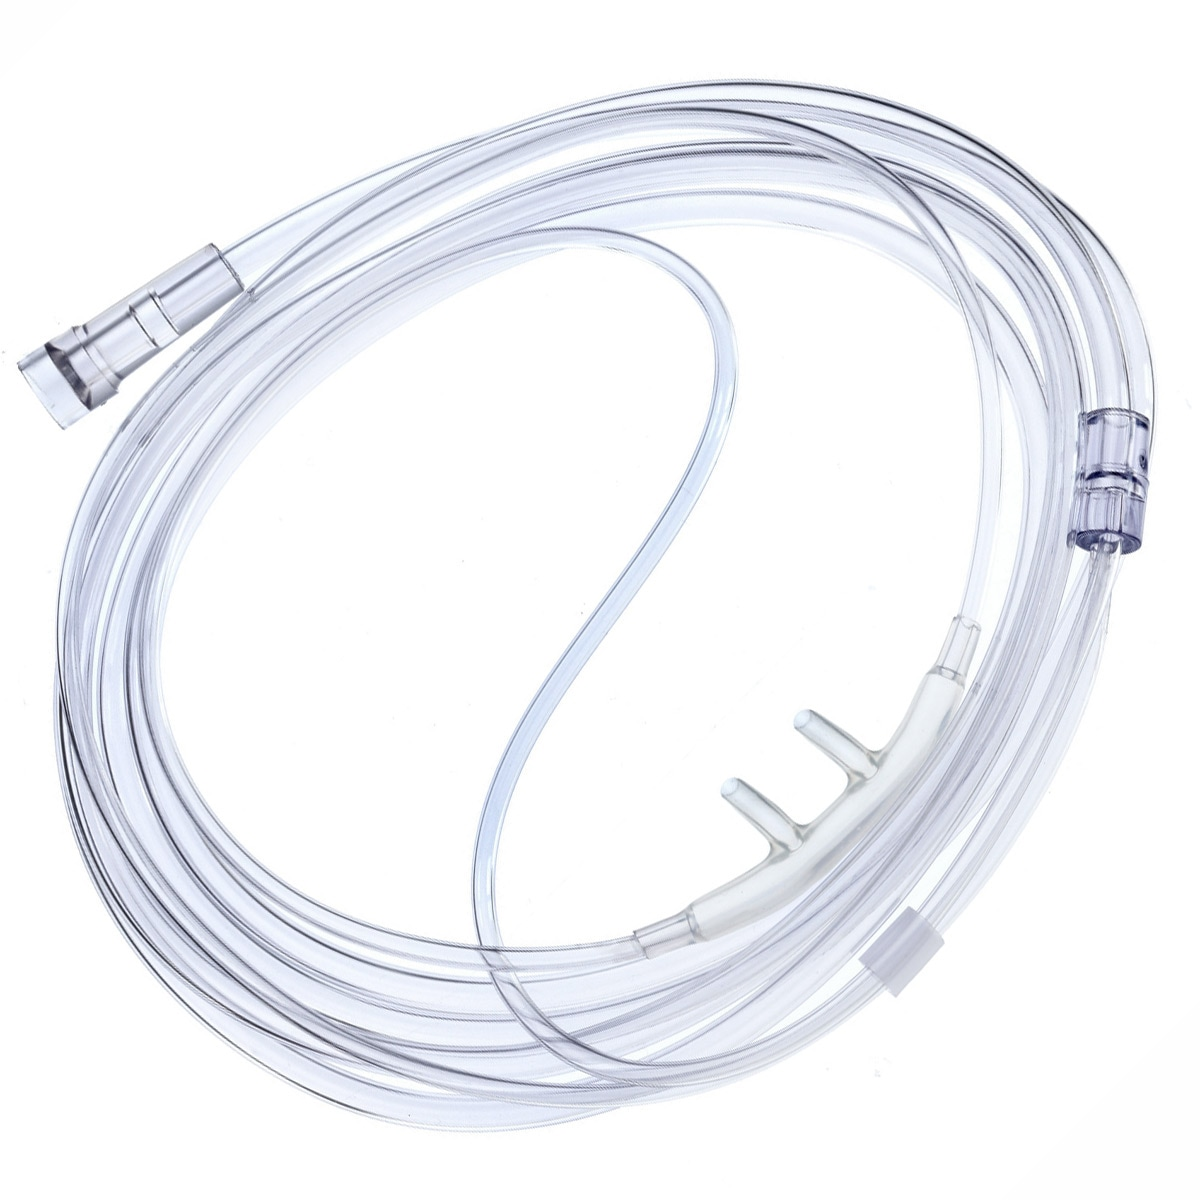 Softech Adult Nasal Cannula with 25 Foot Star Lumen Oxygen Supply Tubing (5 Pack)